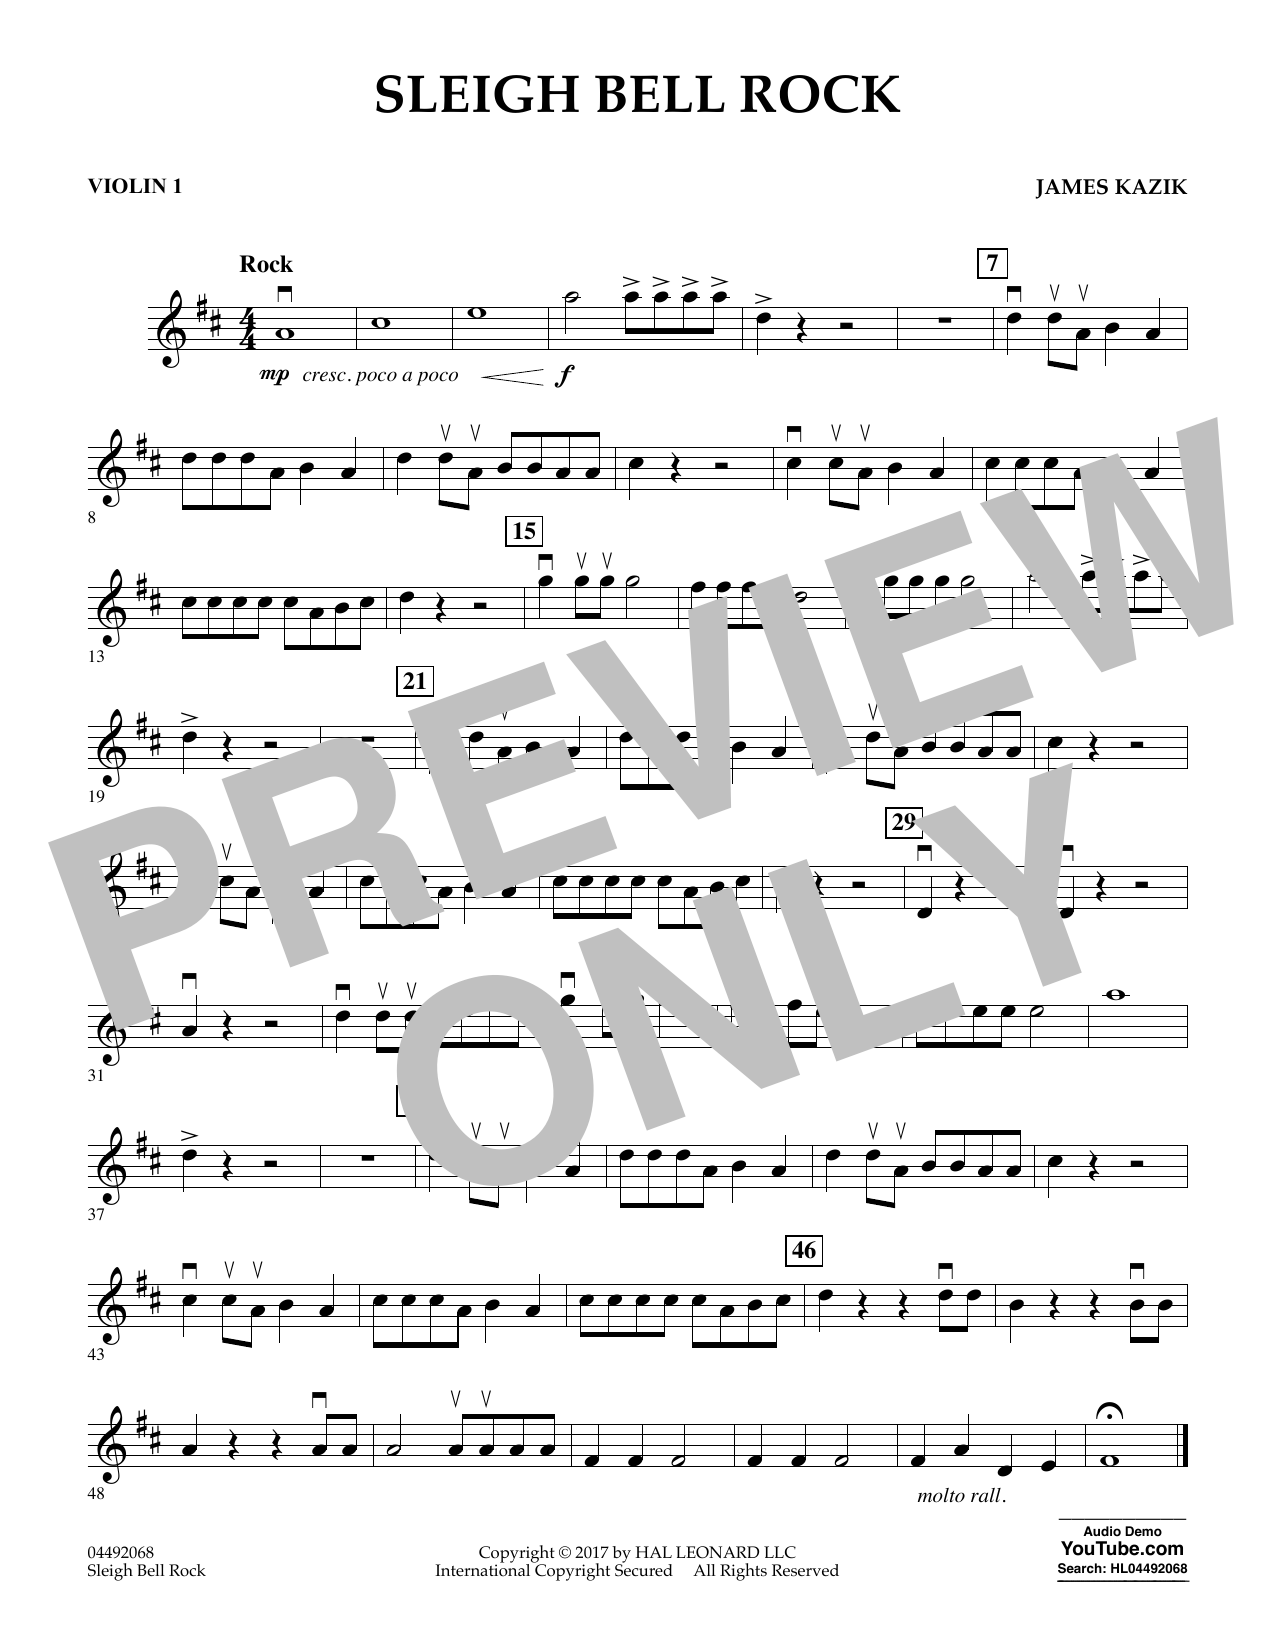 James Kazik Sleigh Bell Rock - Violin 1 sheet music notes and chords. Download Printable PDF.